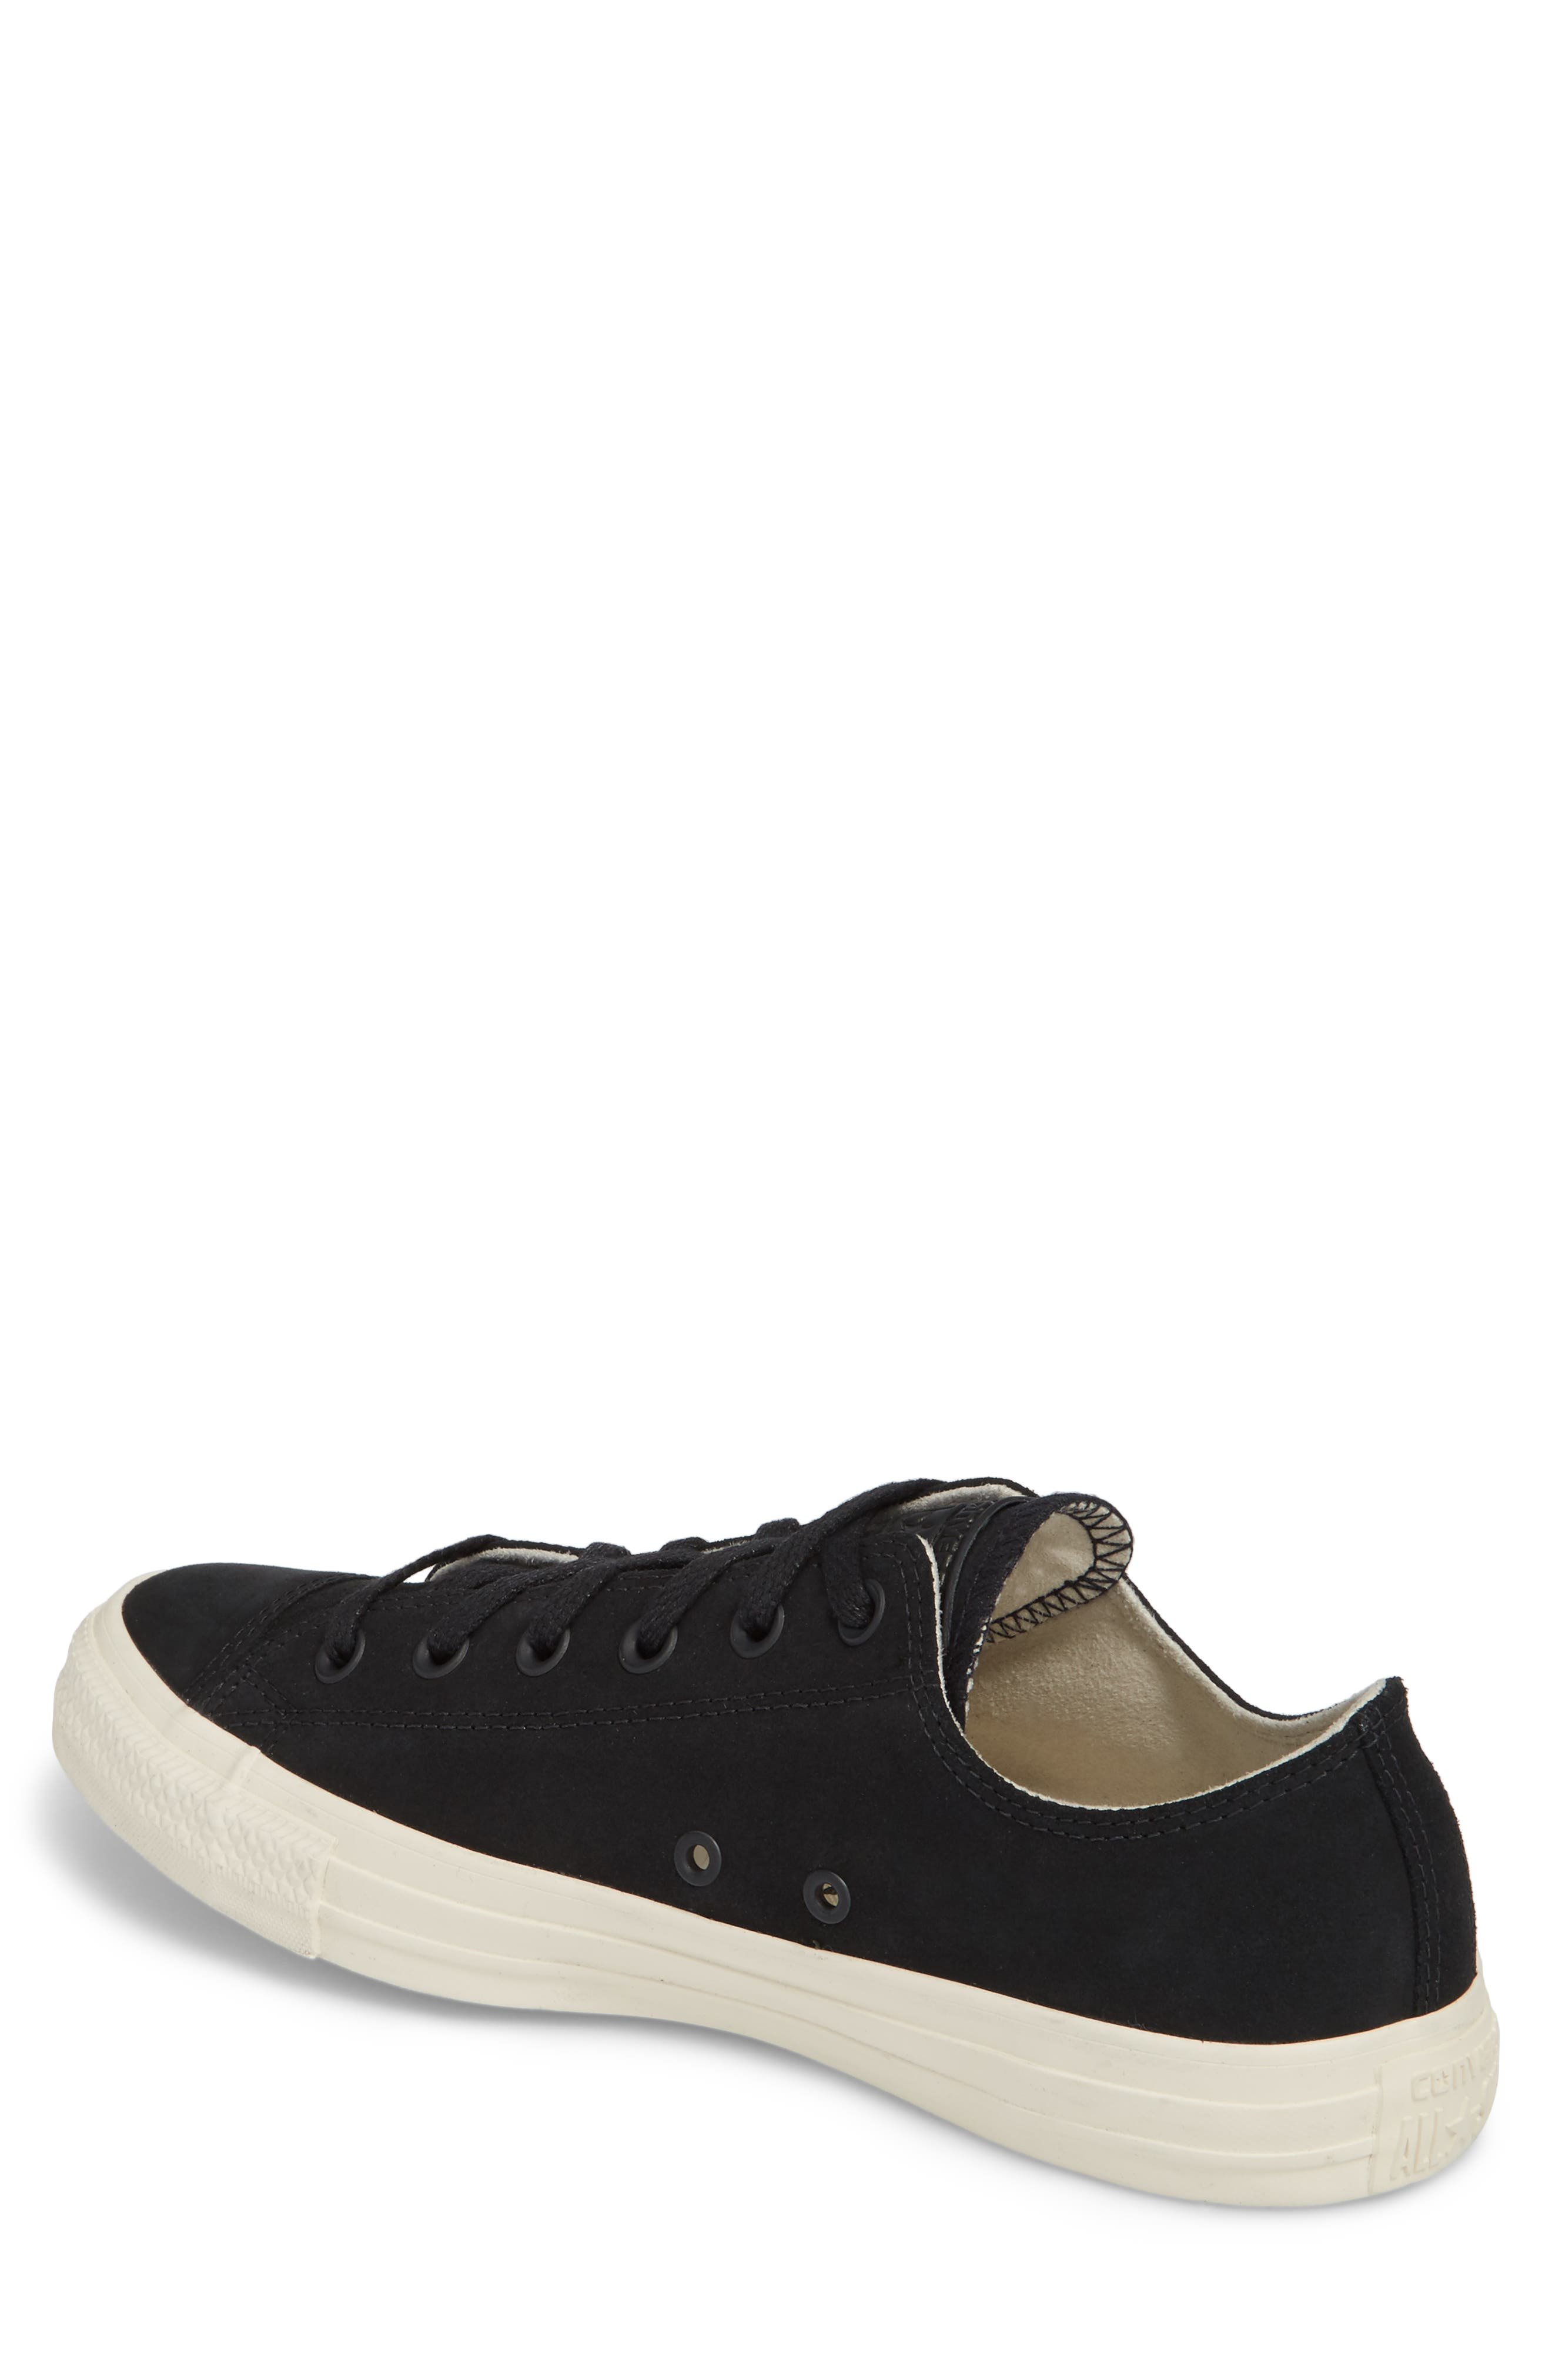 Chuck Taylor<sup>®</sup> All Star<sup>®</sup> Low Top Sneaker,                             Alternate thumbnail 2, color,                             001